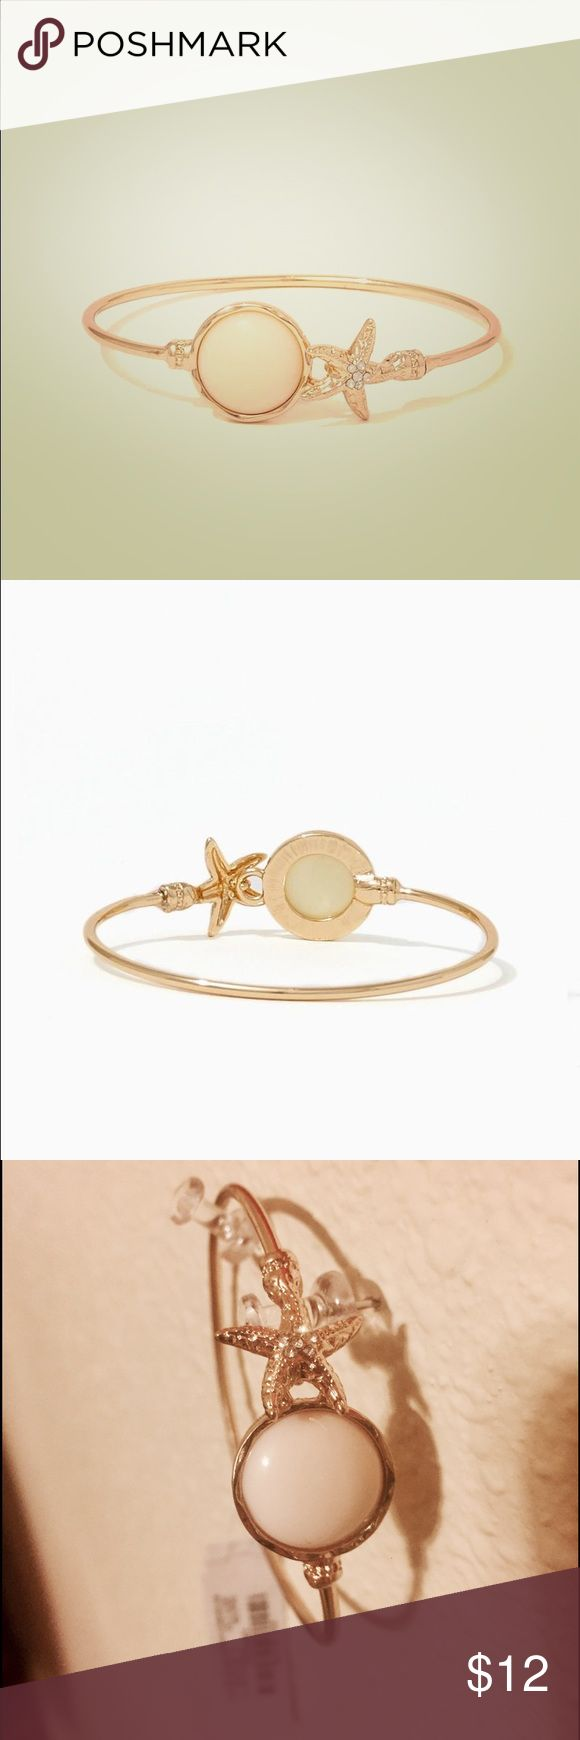 """NWT Charming Charlie Bracelet NWT Charming Charlie gold """"cape cod"""" inspired style bracelet. Gorgeous layering piece, gold starfish and a ivory/cream colored stone. Perfect/new condition! Charming Charlie Jewelry Bracelets"""